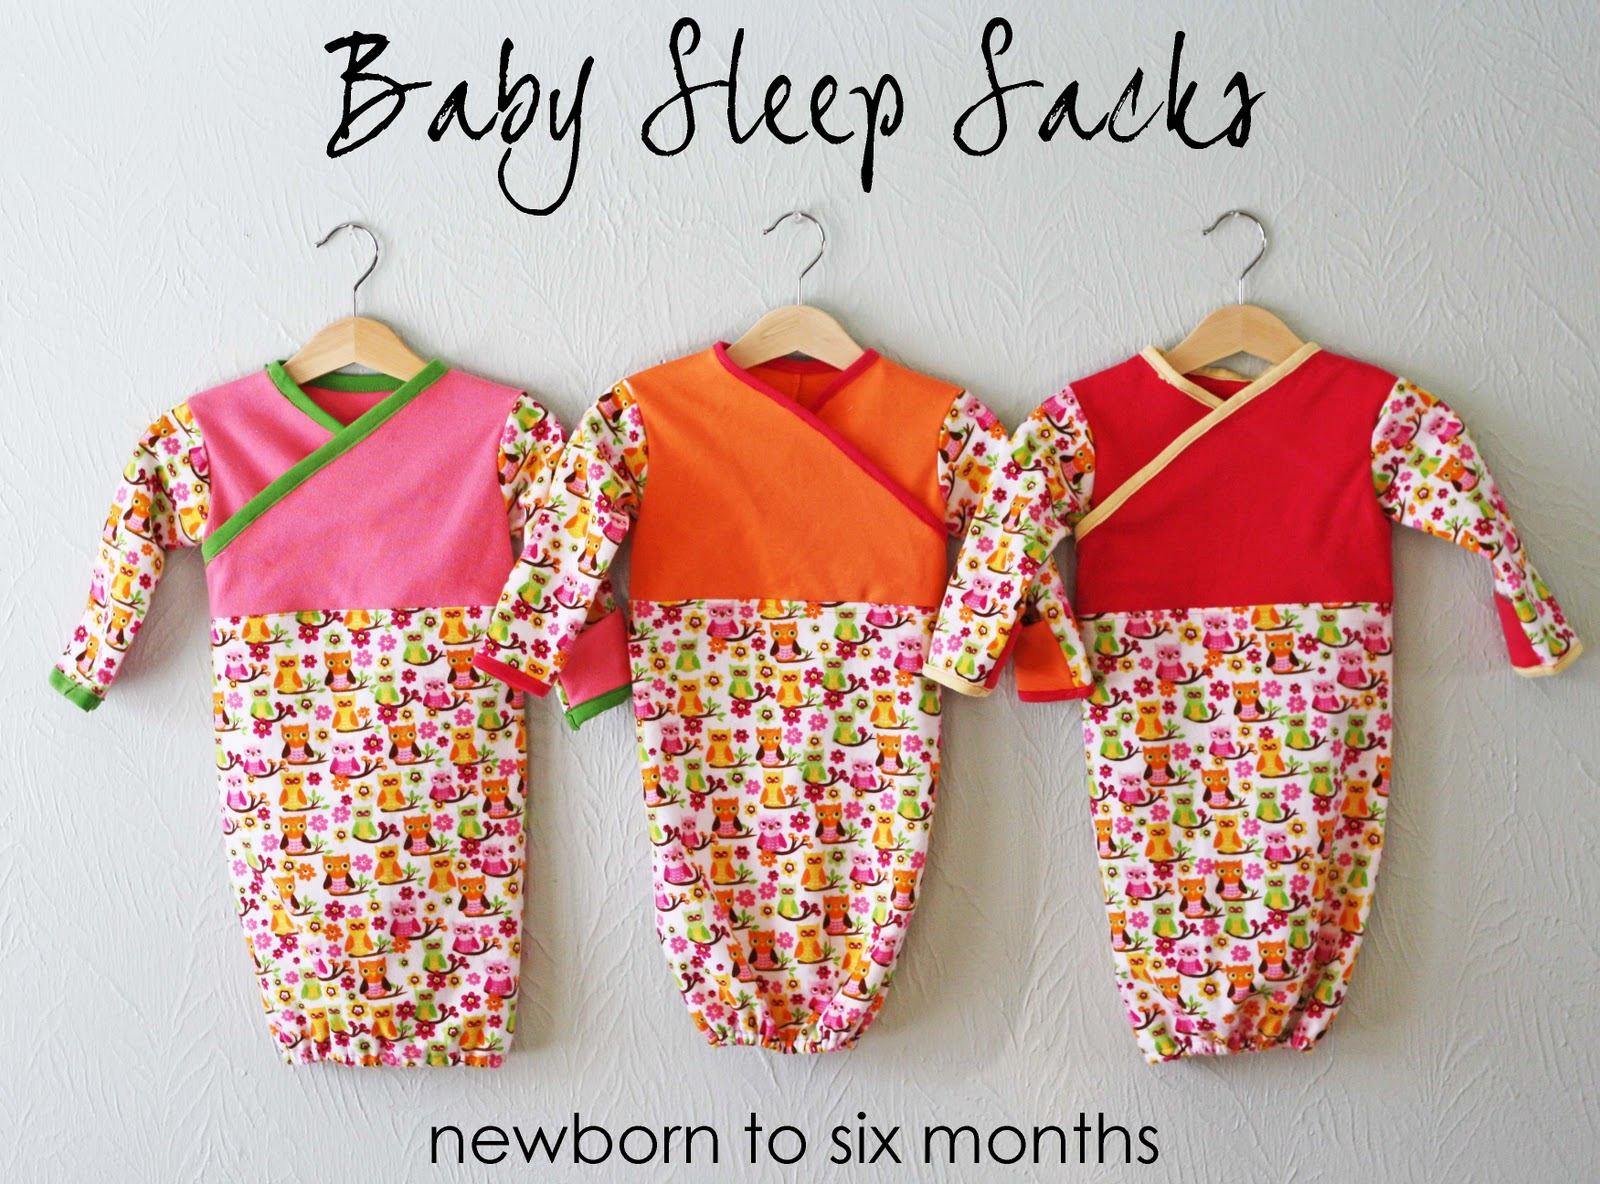 Baby sleeping bags, also called baby sleep sacks for infants and